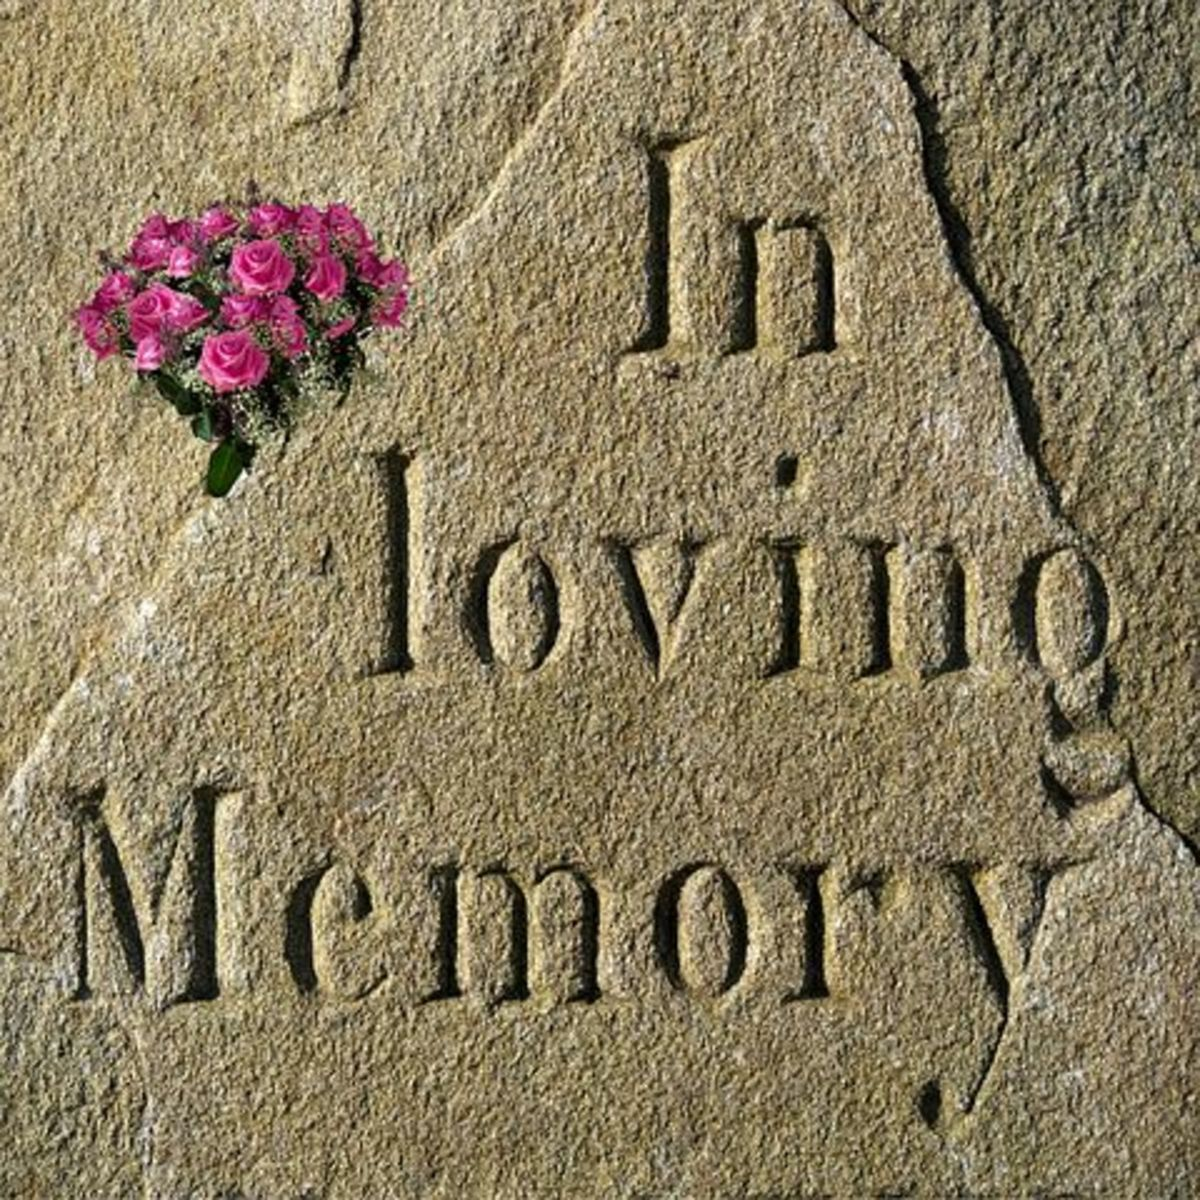 Family and friends are left with mixed emotions as they attempt to embrace good memories.